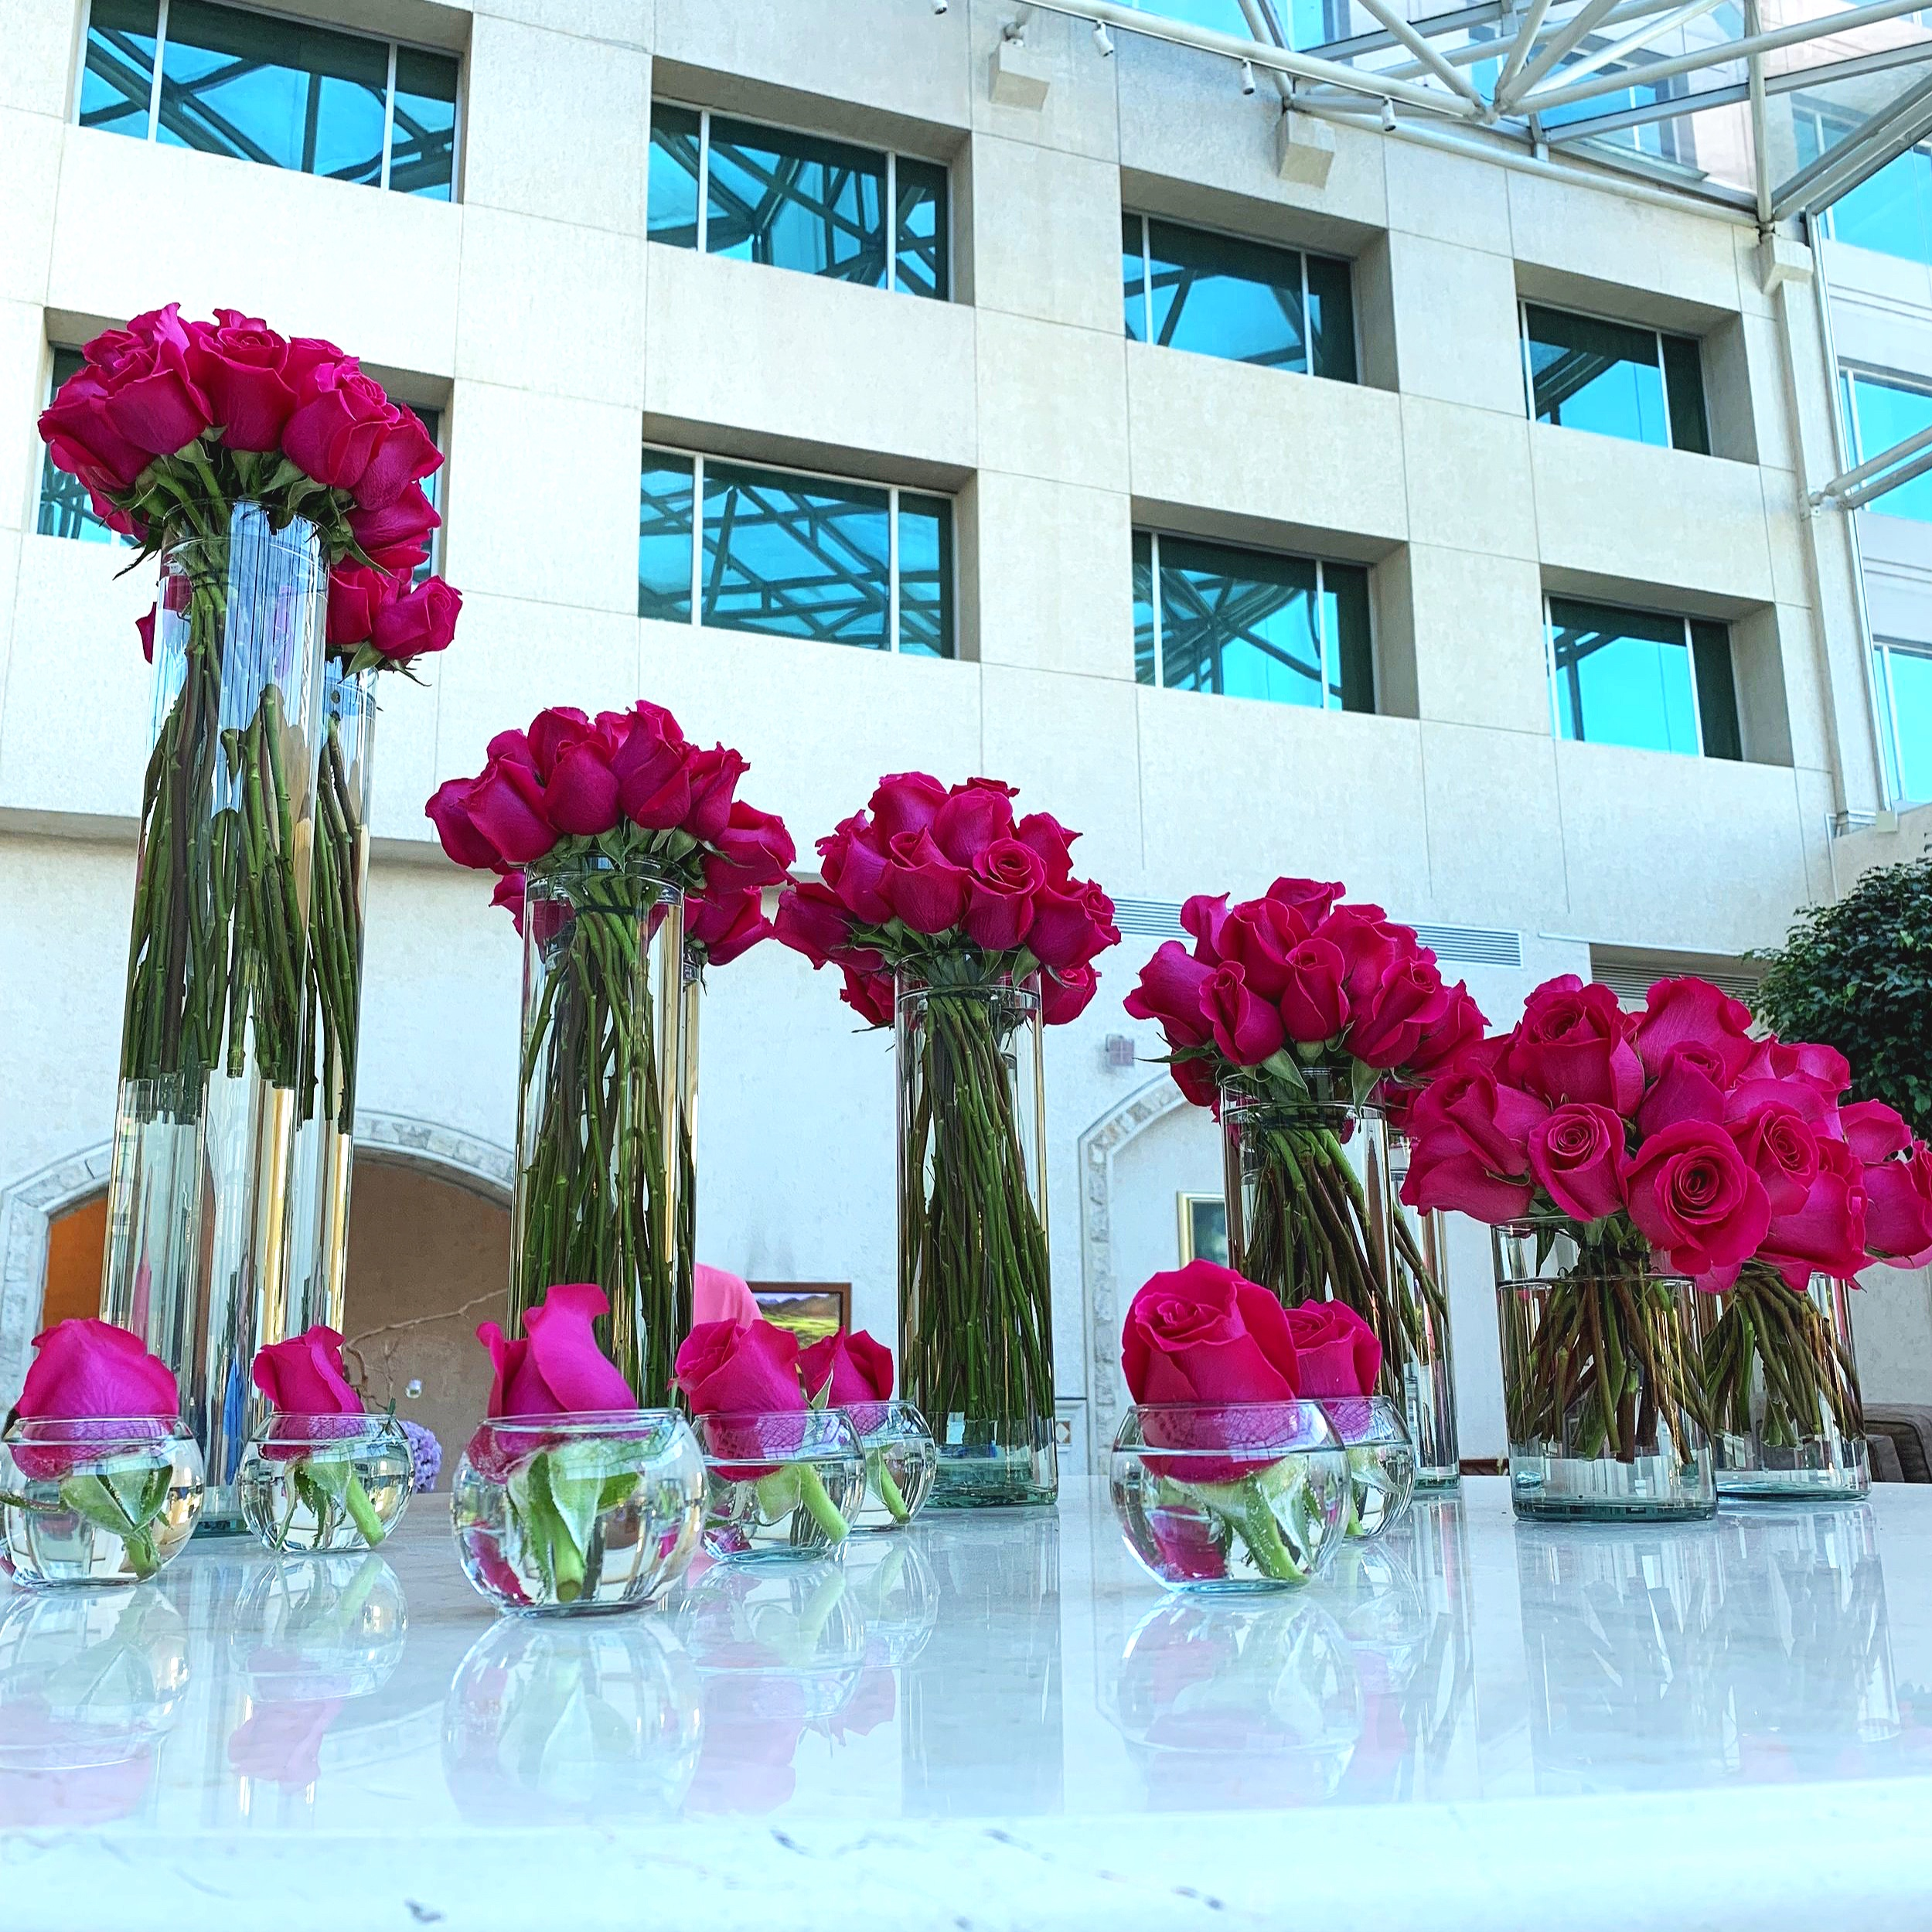 Beautiful flower display in the hotel lobby.